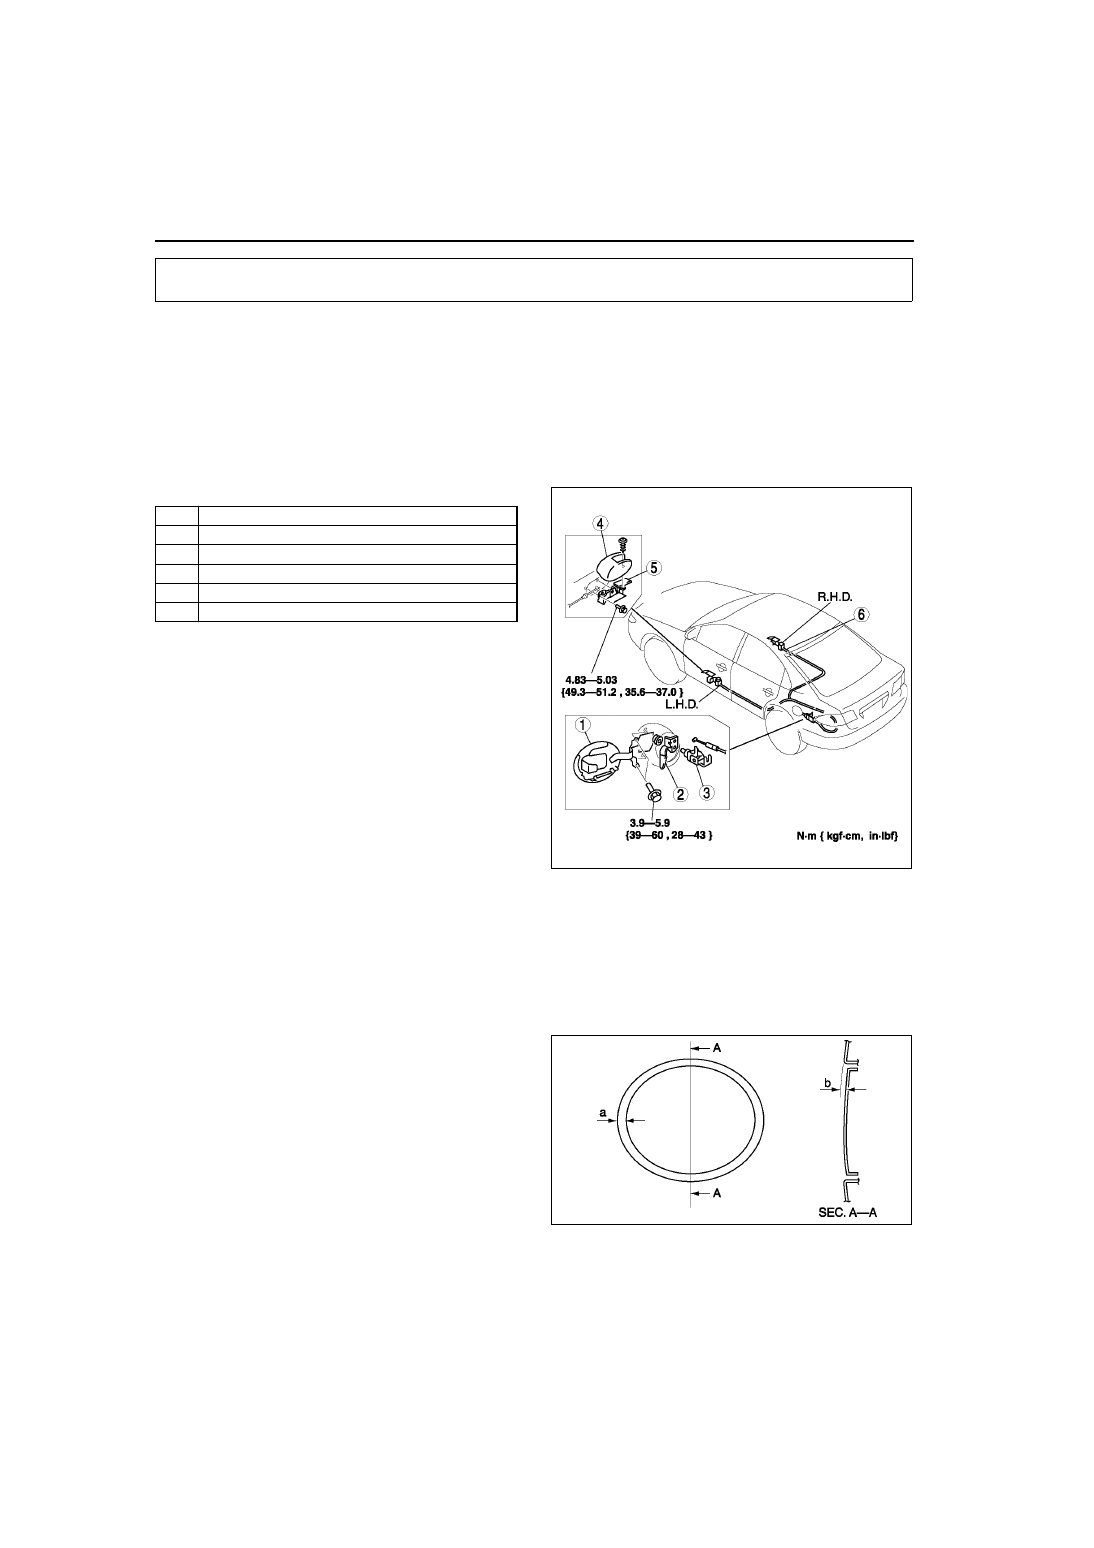 Mazda 3 Service Manual: Trunk Lid Opener Lever RemovalInstallation